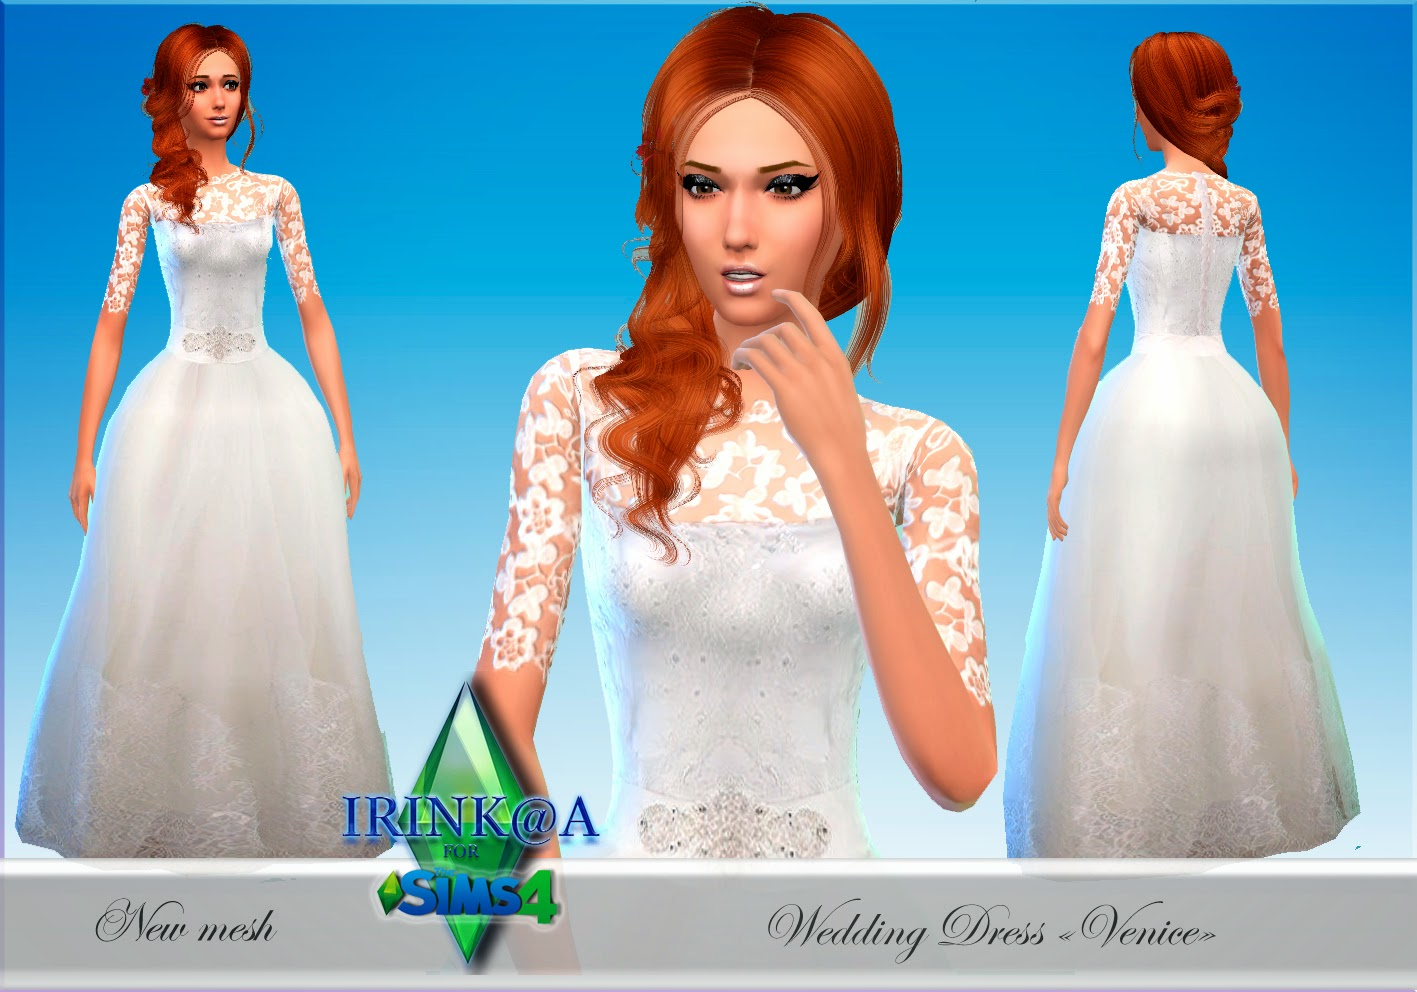 Wedding Dress Venice by Irink@a